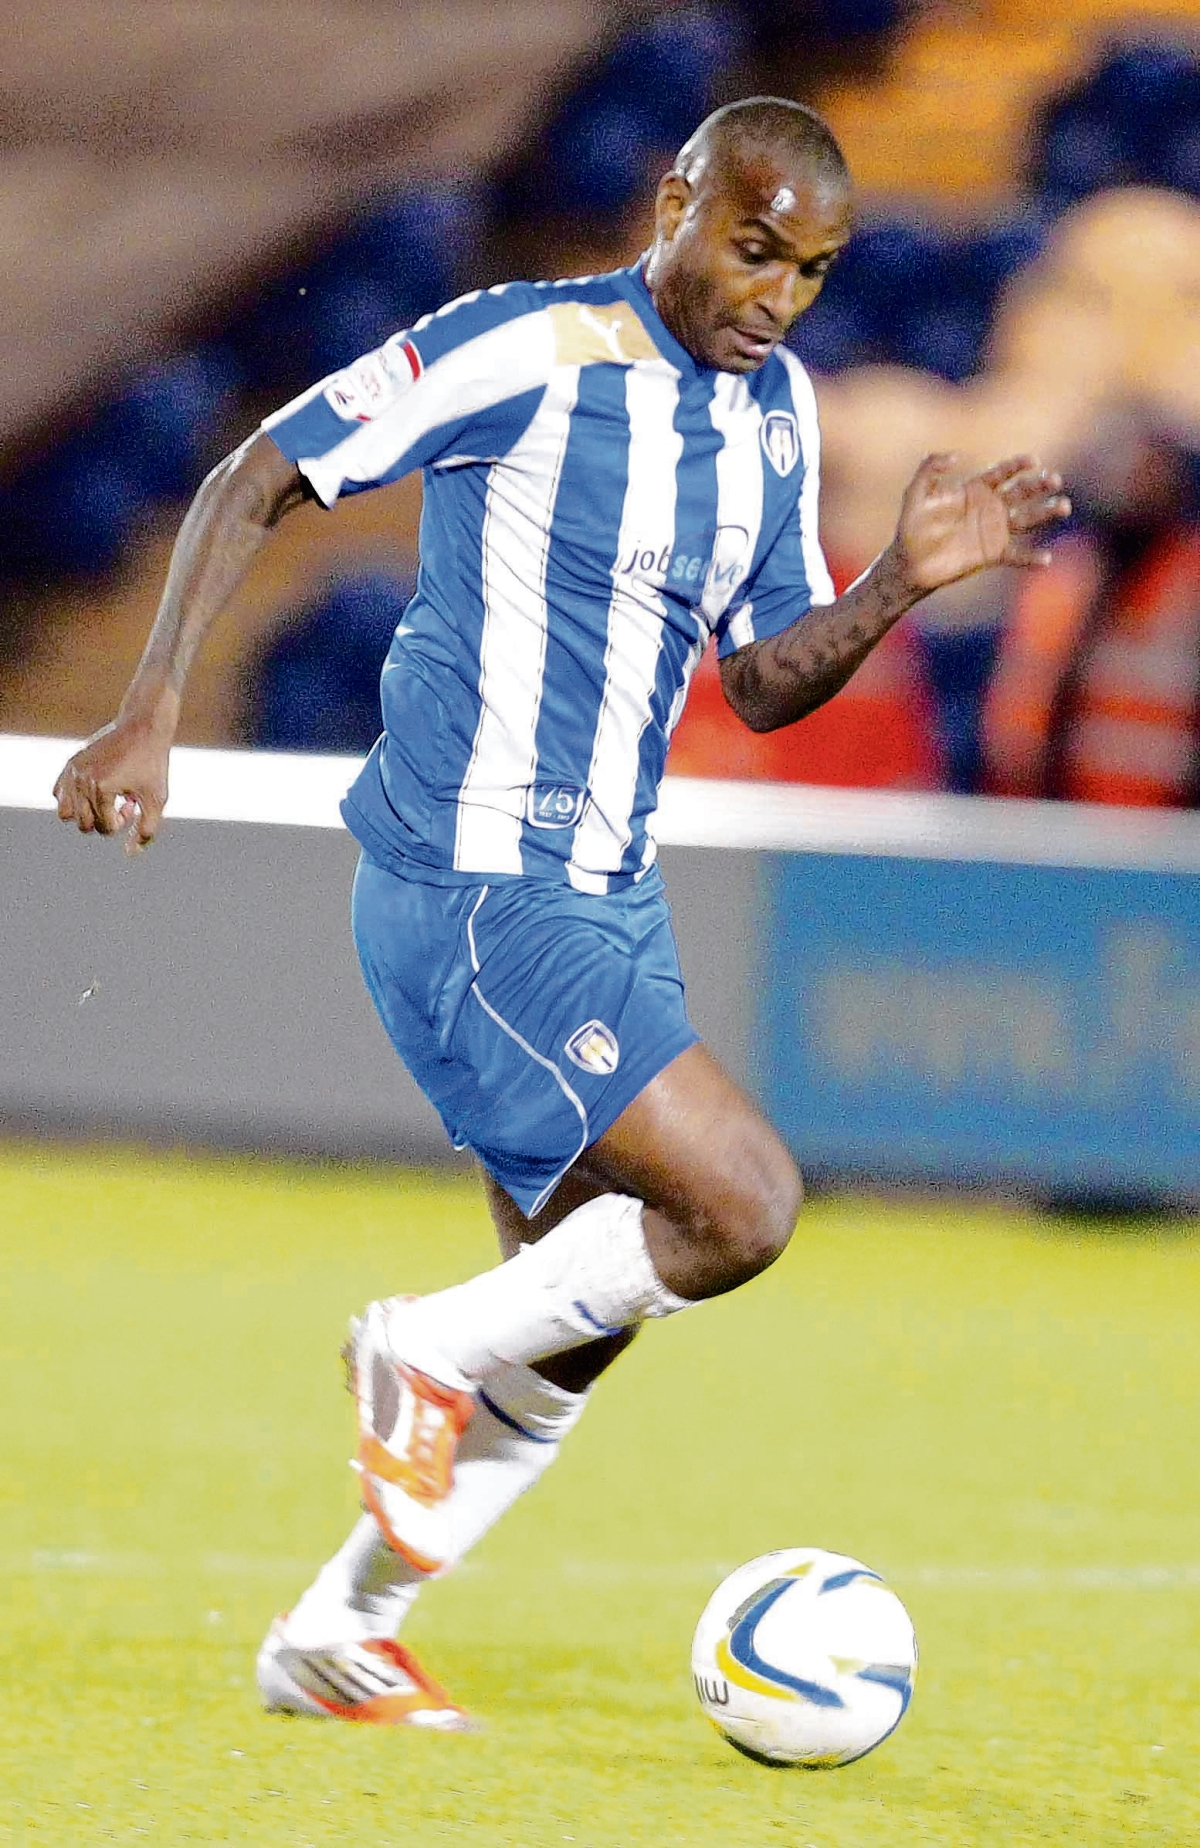 Fighting fit - Colchester United striker Clinton Morrison is feeling sharp ahead of the new League One season.